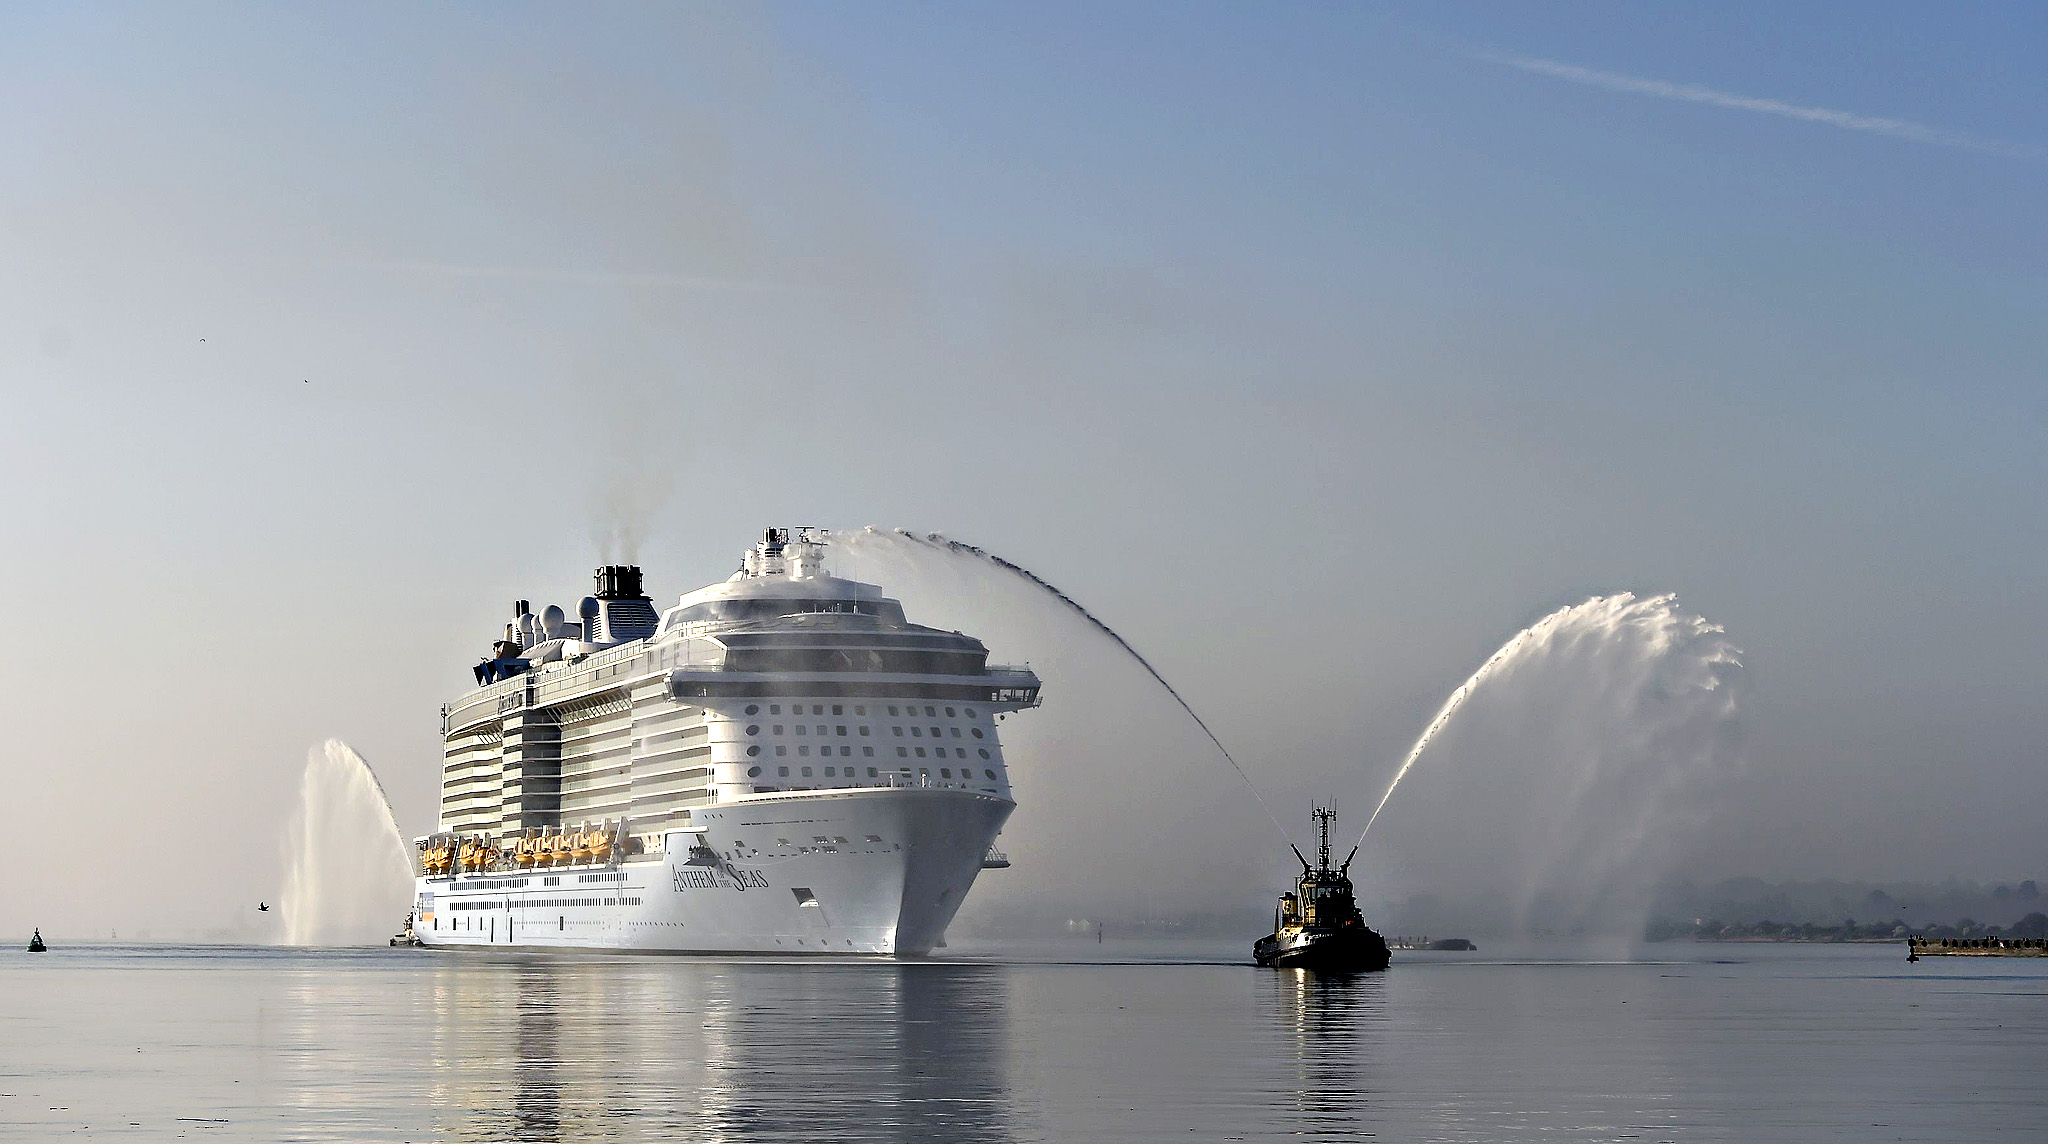 Anthem of the Seas arrives in Southampton...The world's joint third largest cruise ship, MS Anthem of the Seas, owned by Royal Caribbean, arrives at berth 101 in Southampton Docks ahead of her naming ceremony on 20 April. PRESS ASSOCIATION Photo. Picture date: Wednesday April 15, 2015.